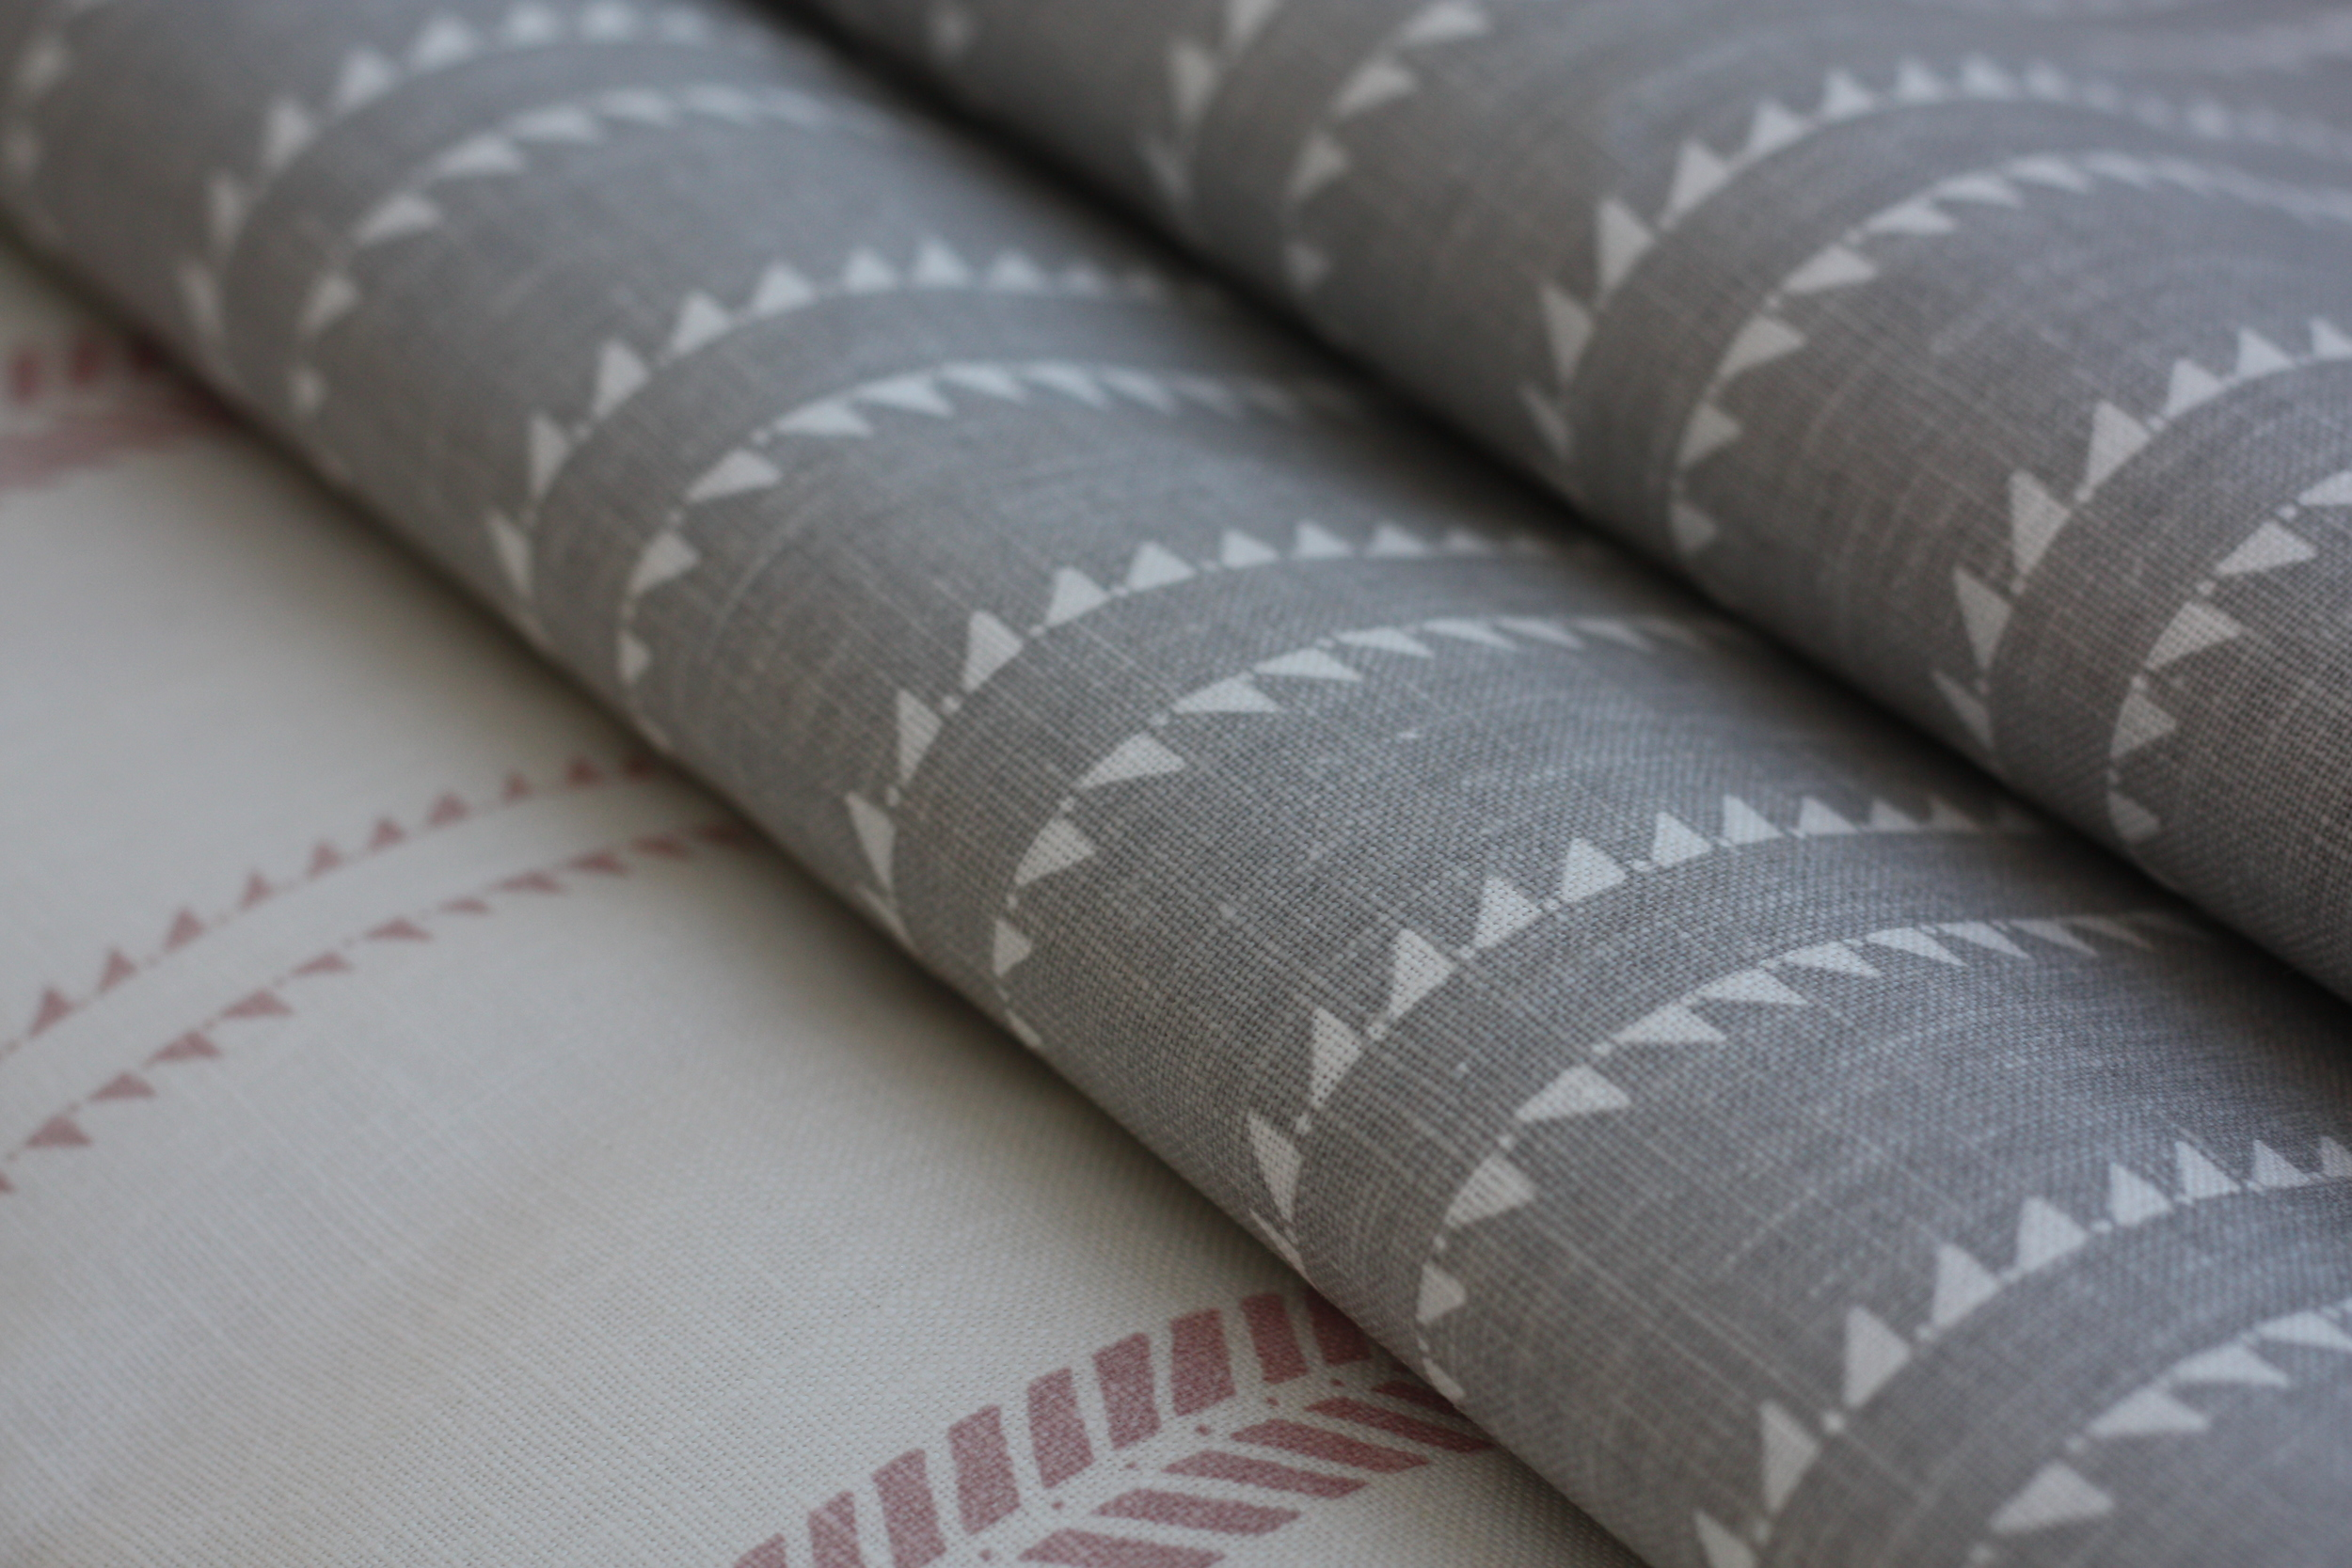 WINDMILL WOOD IN ROCK GREY, SLADE STRIPE IN PETAL PINK LINEN FABRIC